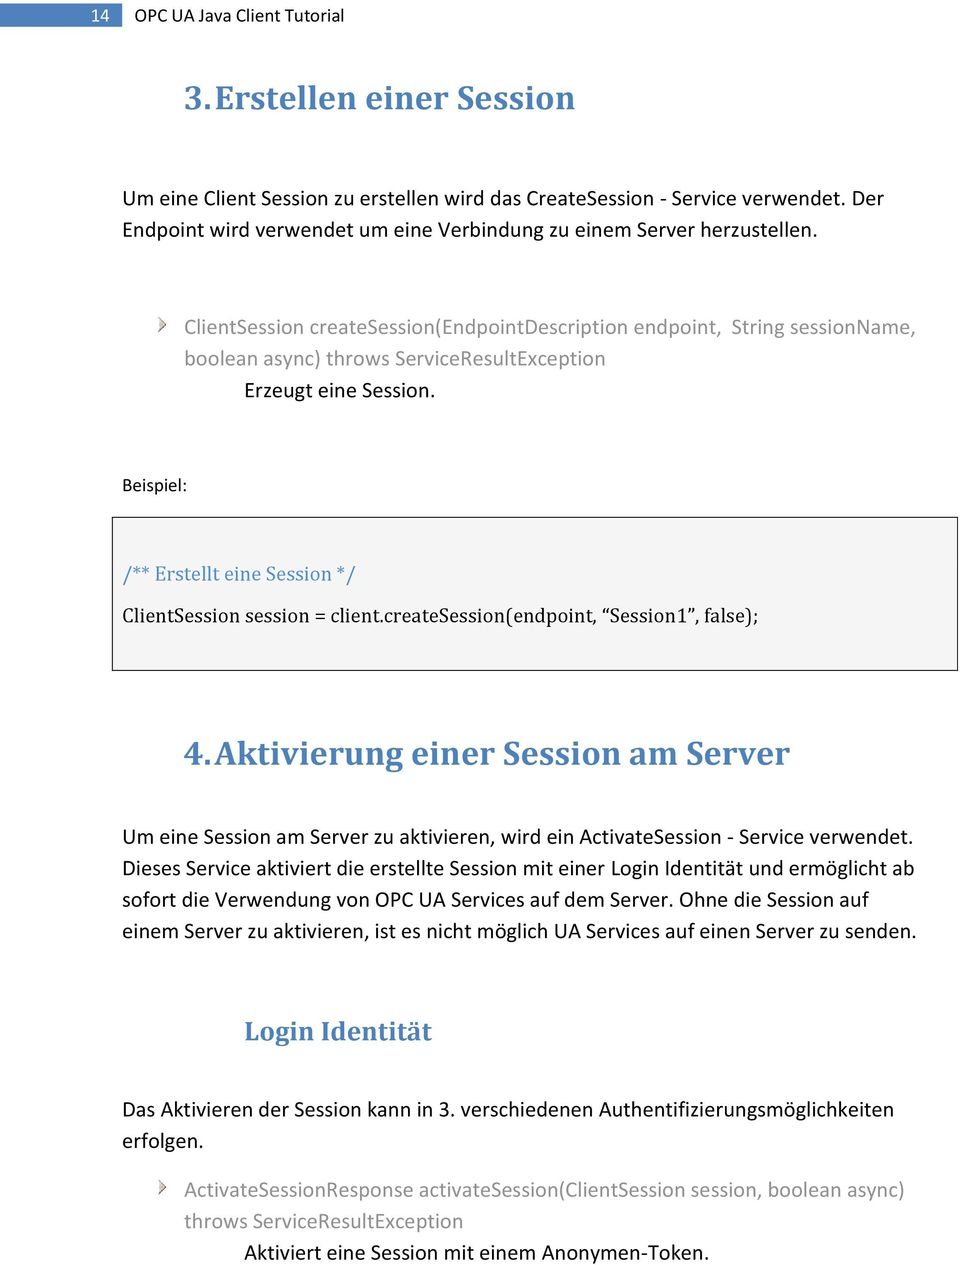 ClientSession createsession(endpointdescription endpoint, String sessionname, boolean async) throws ServiceResultException Erzeugt eine Session.